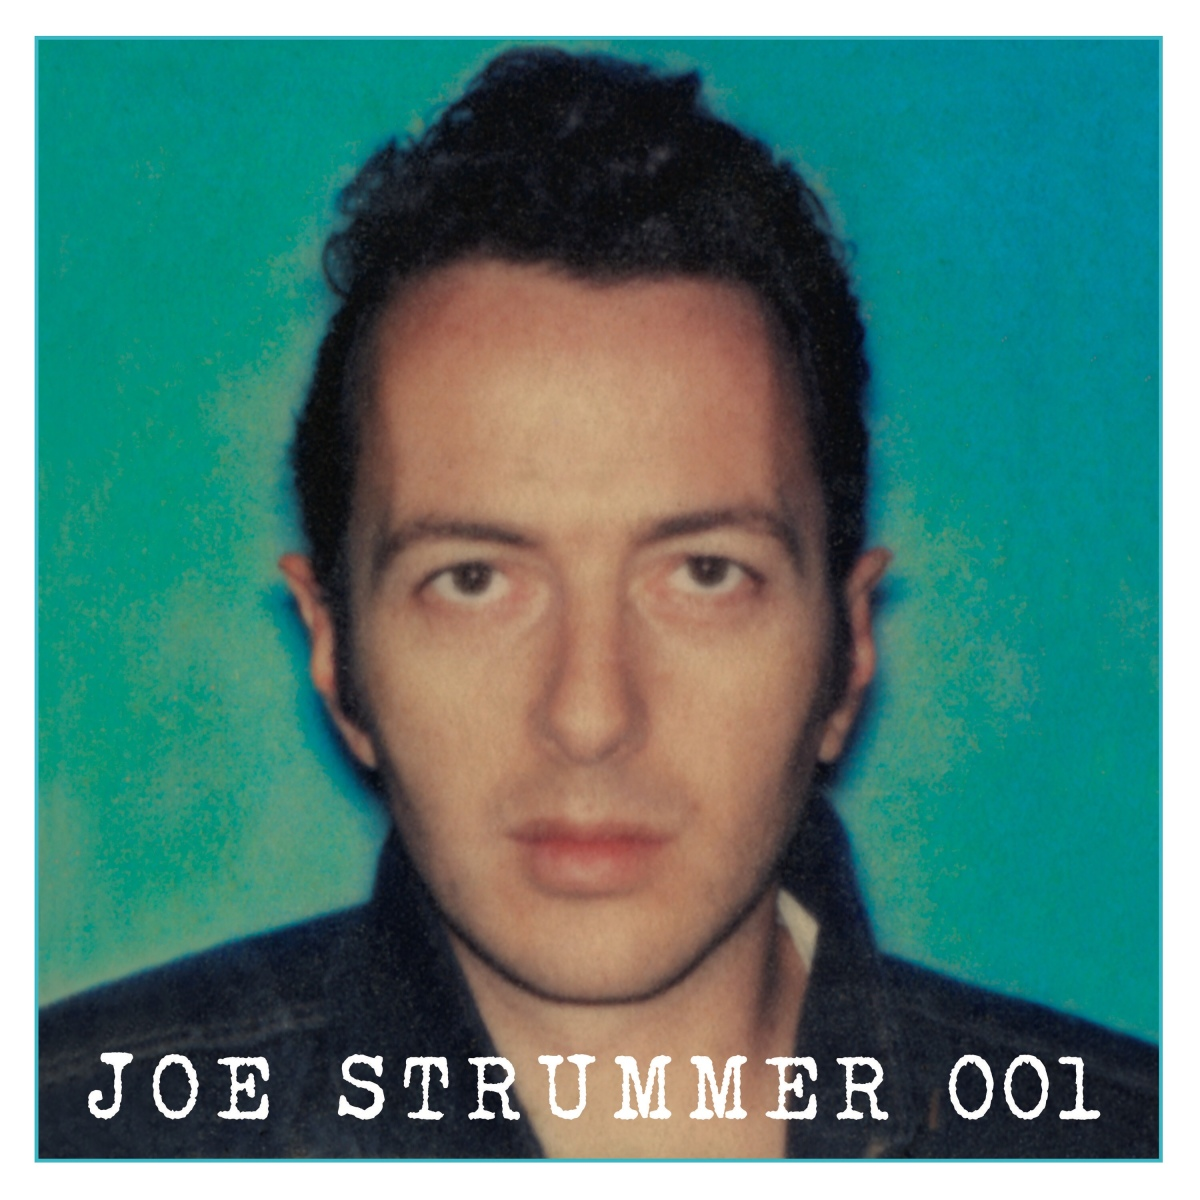 Joe Strummer & The Mescaleros: London is Burning